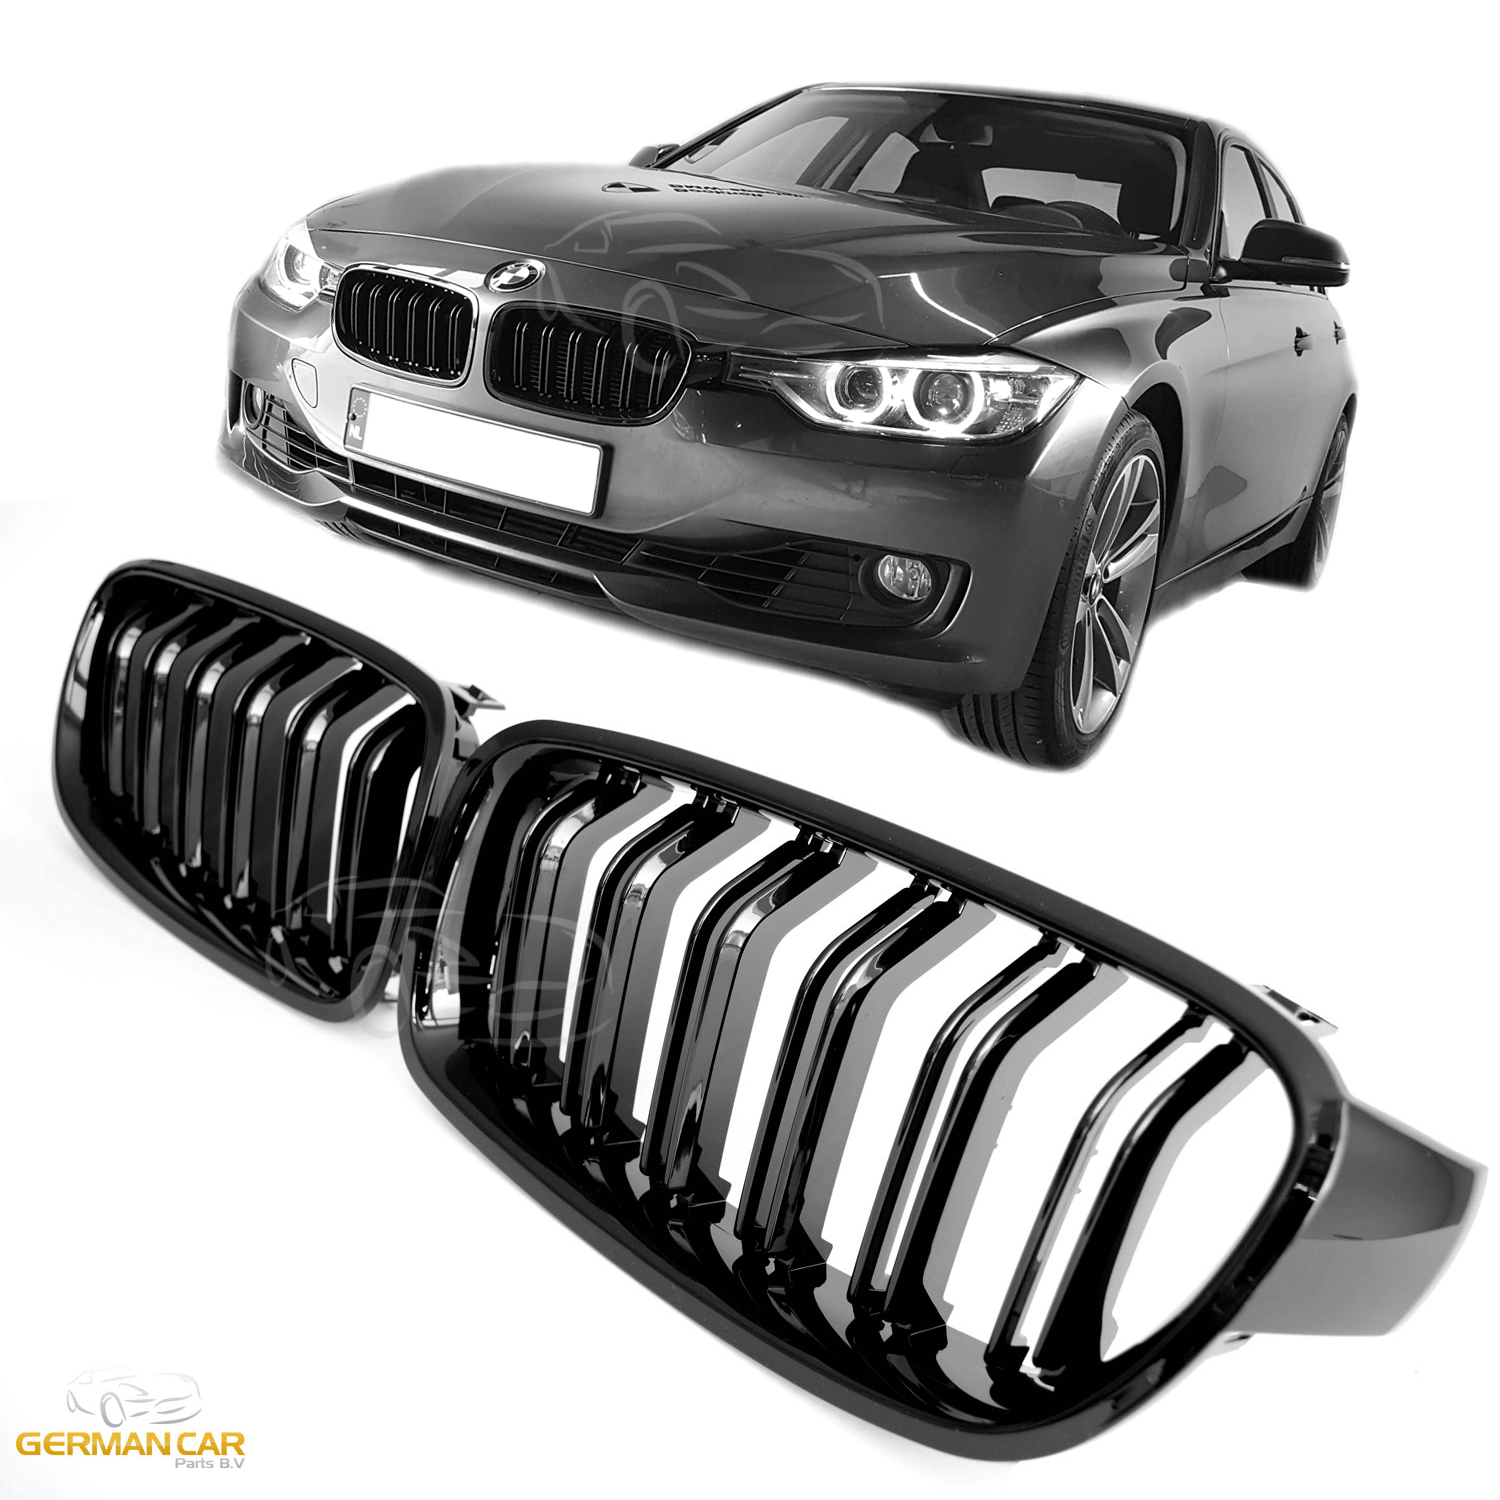 Bmw Grills: GRILLE FOR BMW F30 F31 SPORT KIDNEY DOUBLE SLAT M3 LOOK